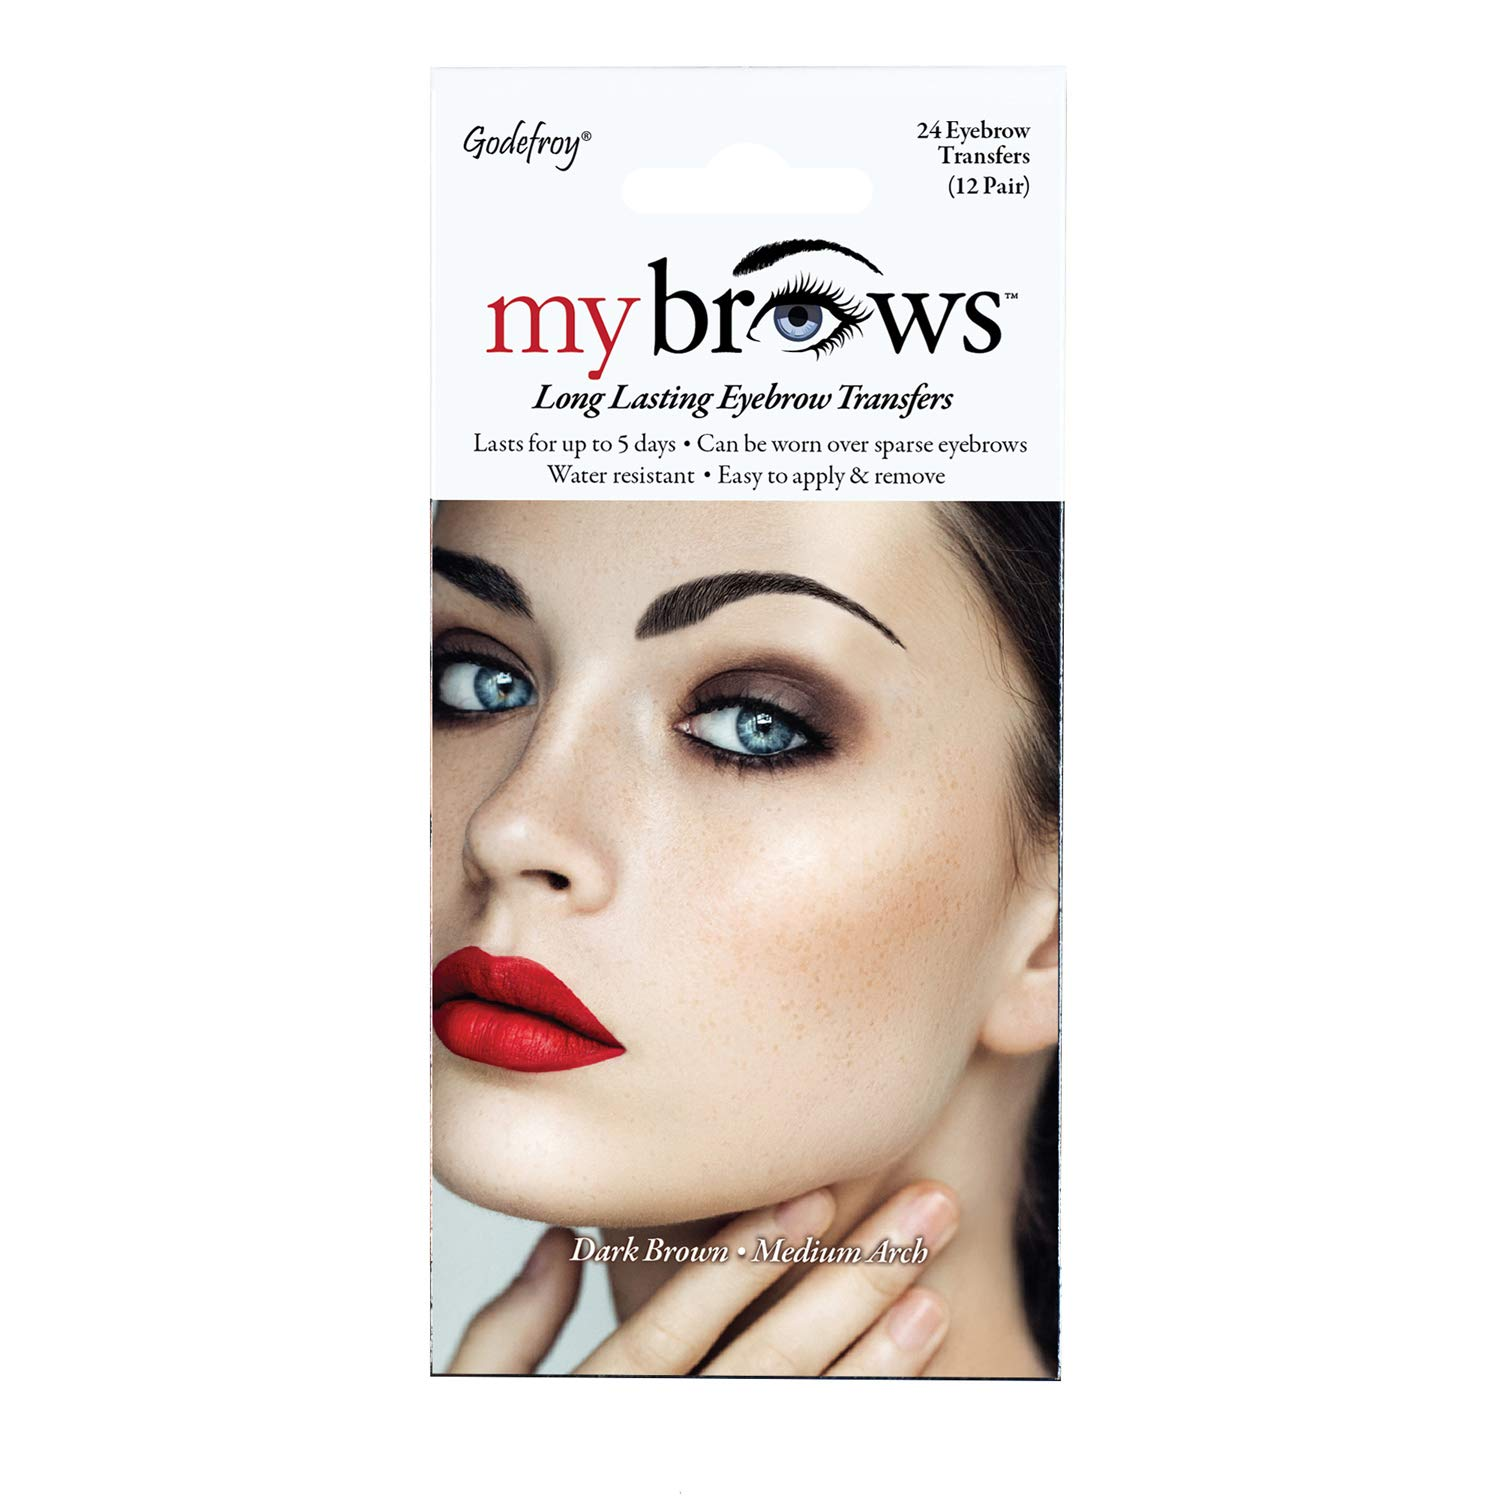 Godefroy MyBrows Long Lasting Eyebrow Transfers, Medium Arch, Dark Brown, 12-Pairs of Brows